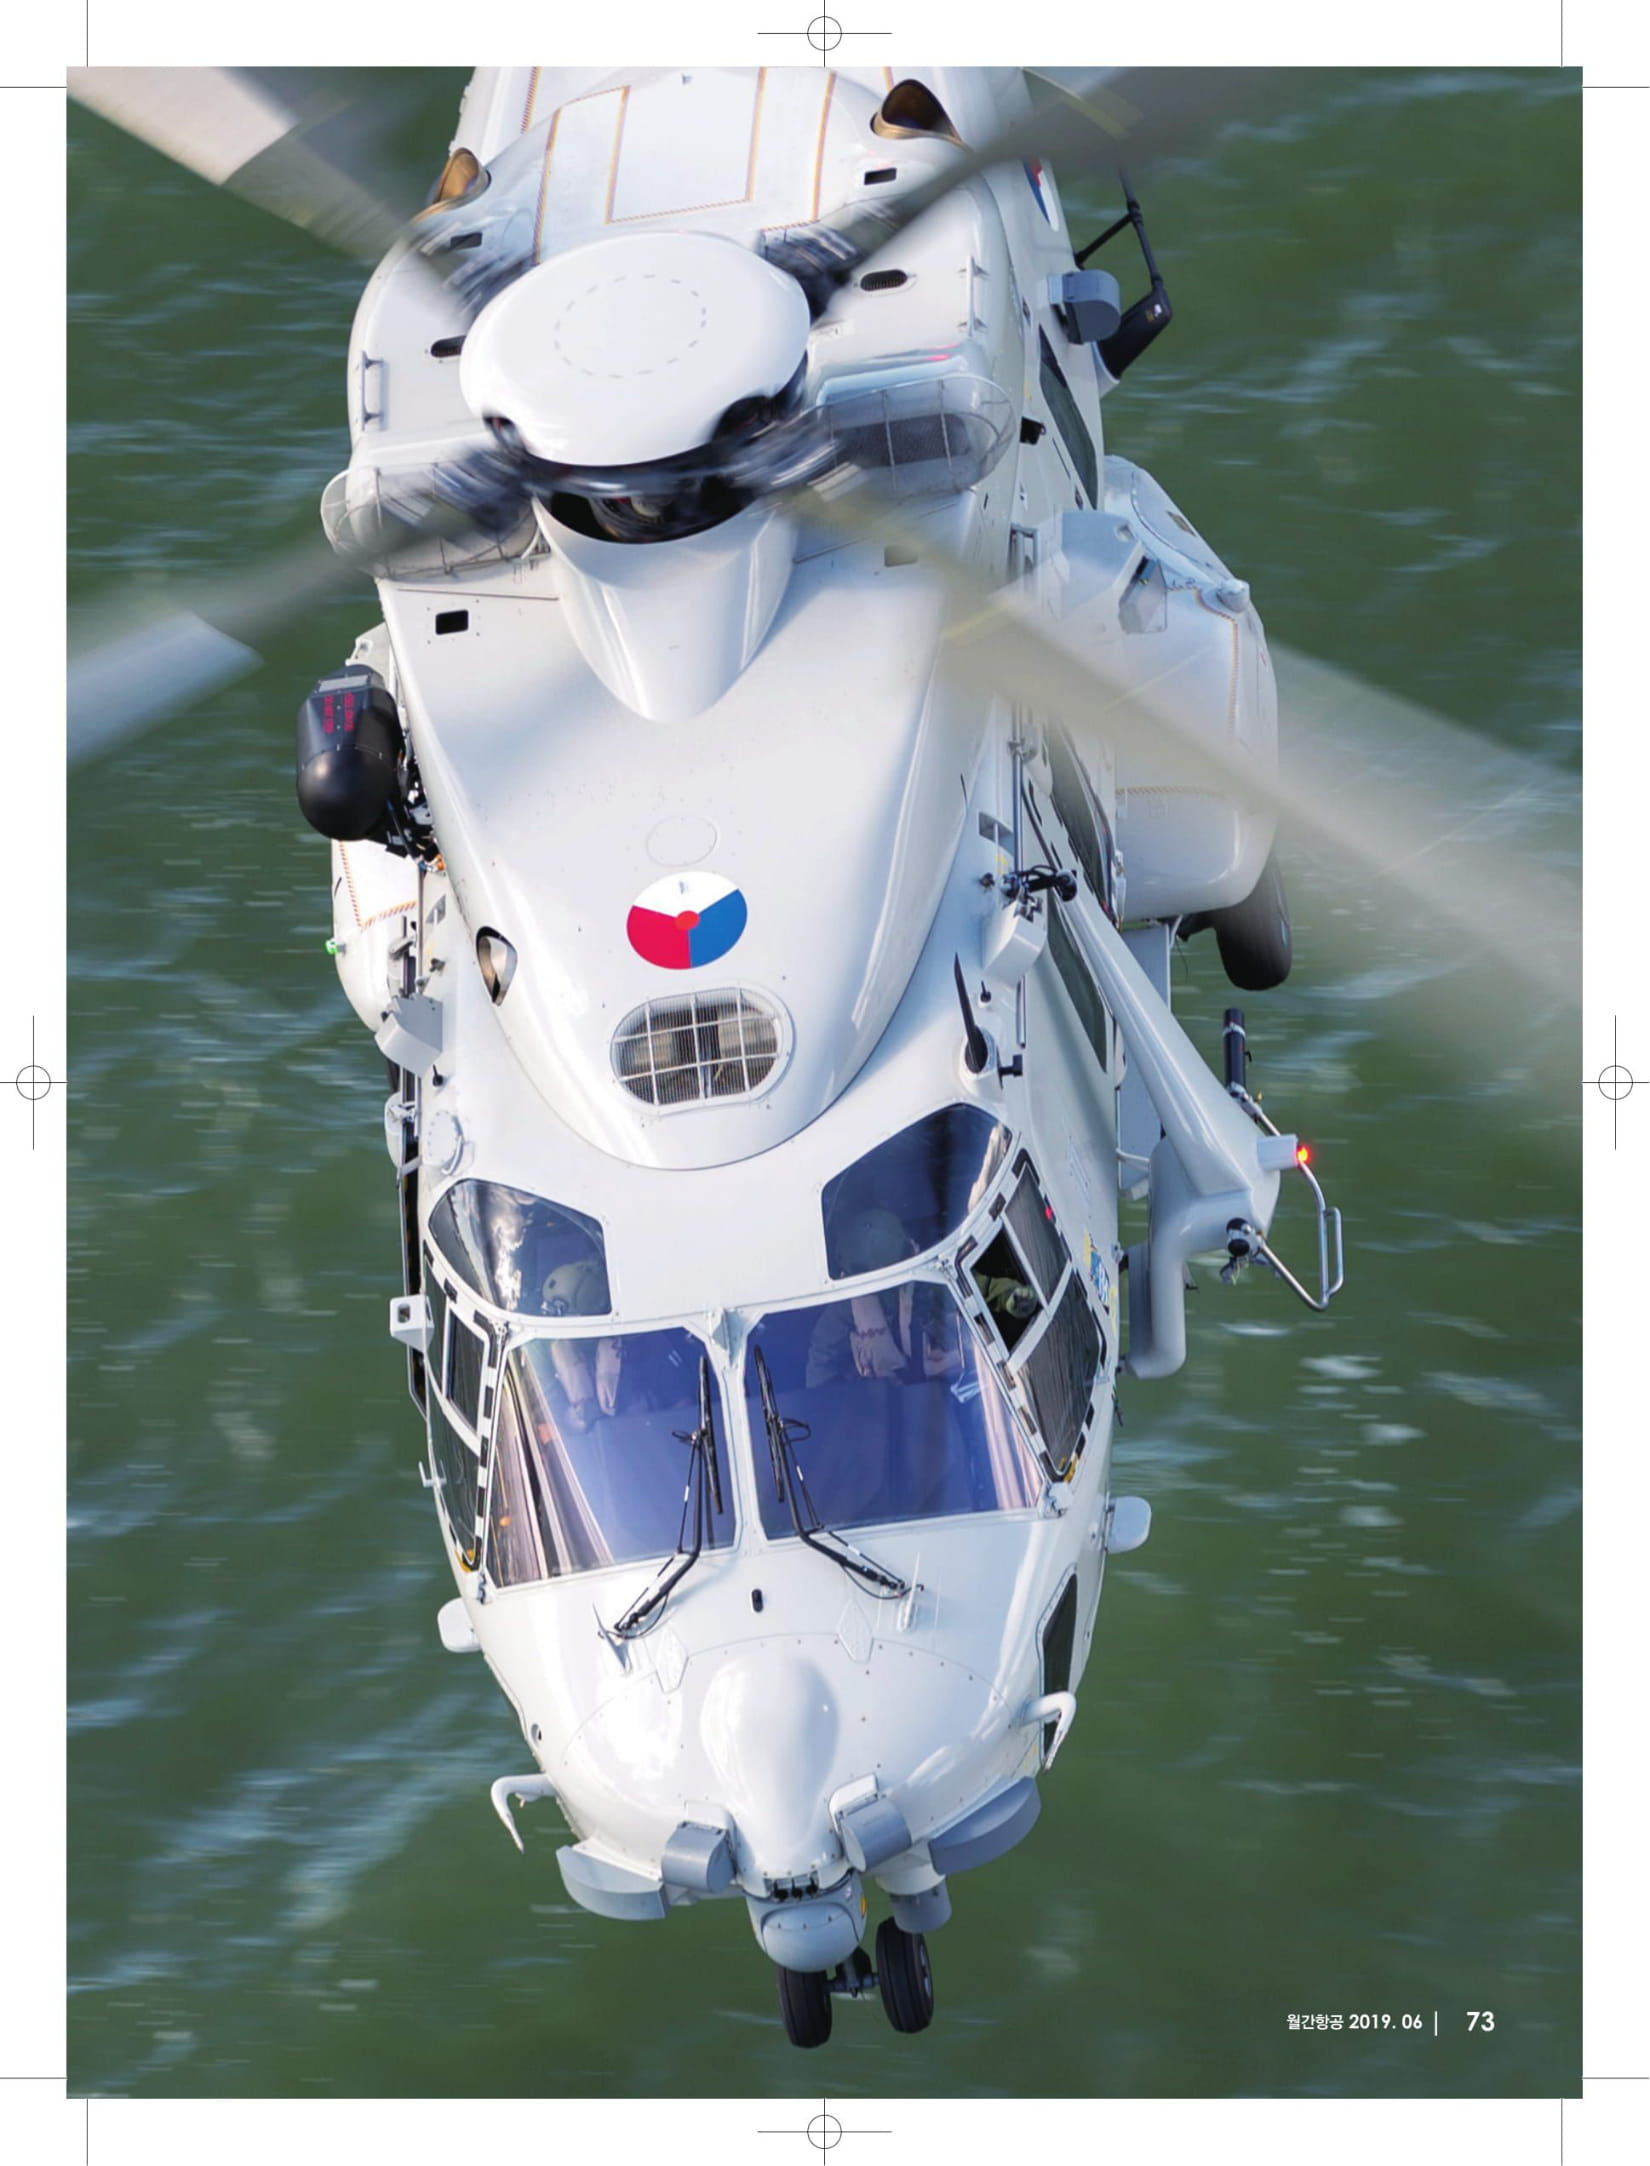 Aerospace & Defense (Korea)_Dutch NH90s-09